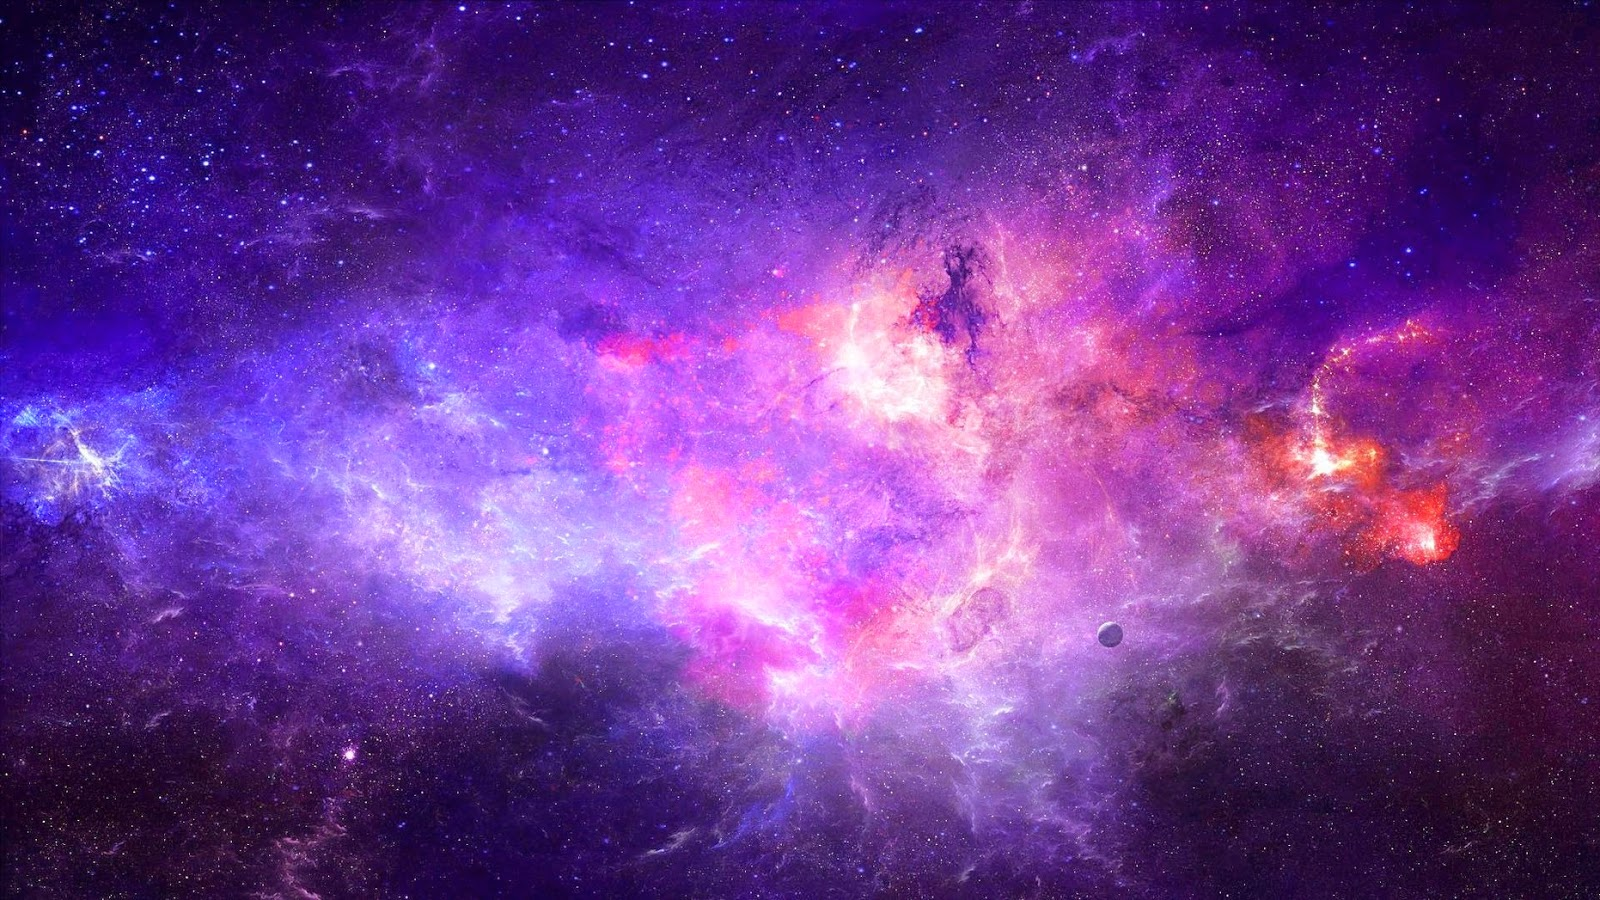 galaxy wallpaper free download galaxy violet wallpaper